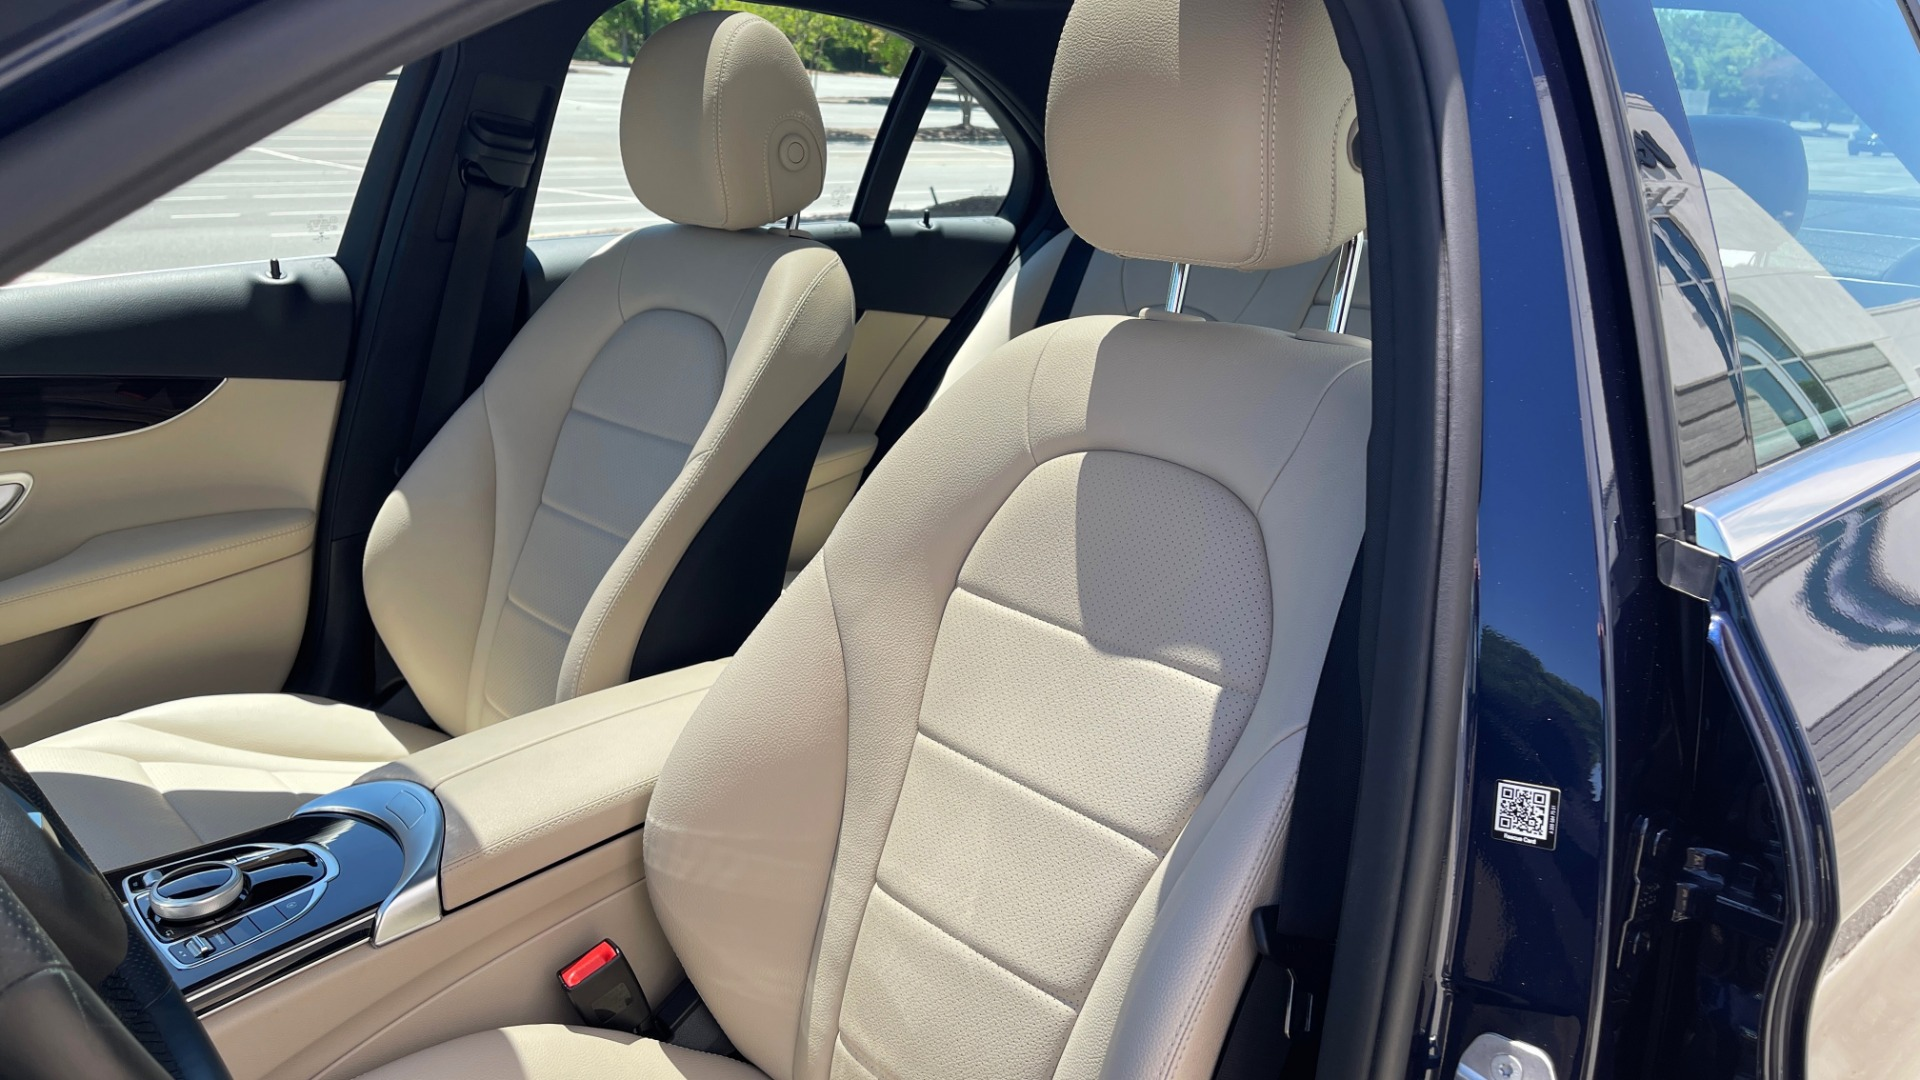 Used 2018 Mercedes-Benz C-CLASS C 300 PREMIUM / KEYLESS-GO / PANO-ROOF / BURMESTER / REARVIEW for sale $29,495 at Formula Imports in Charlotte NC 28227 53